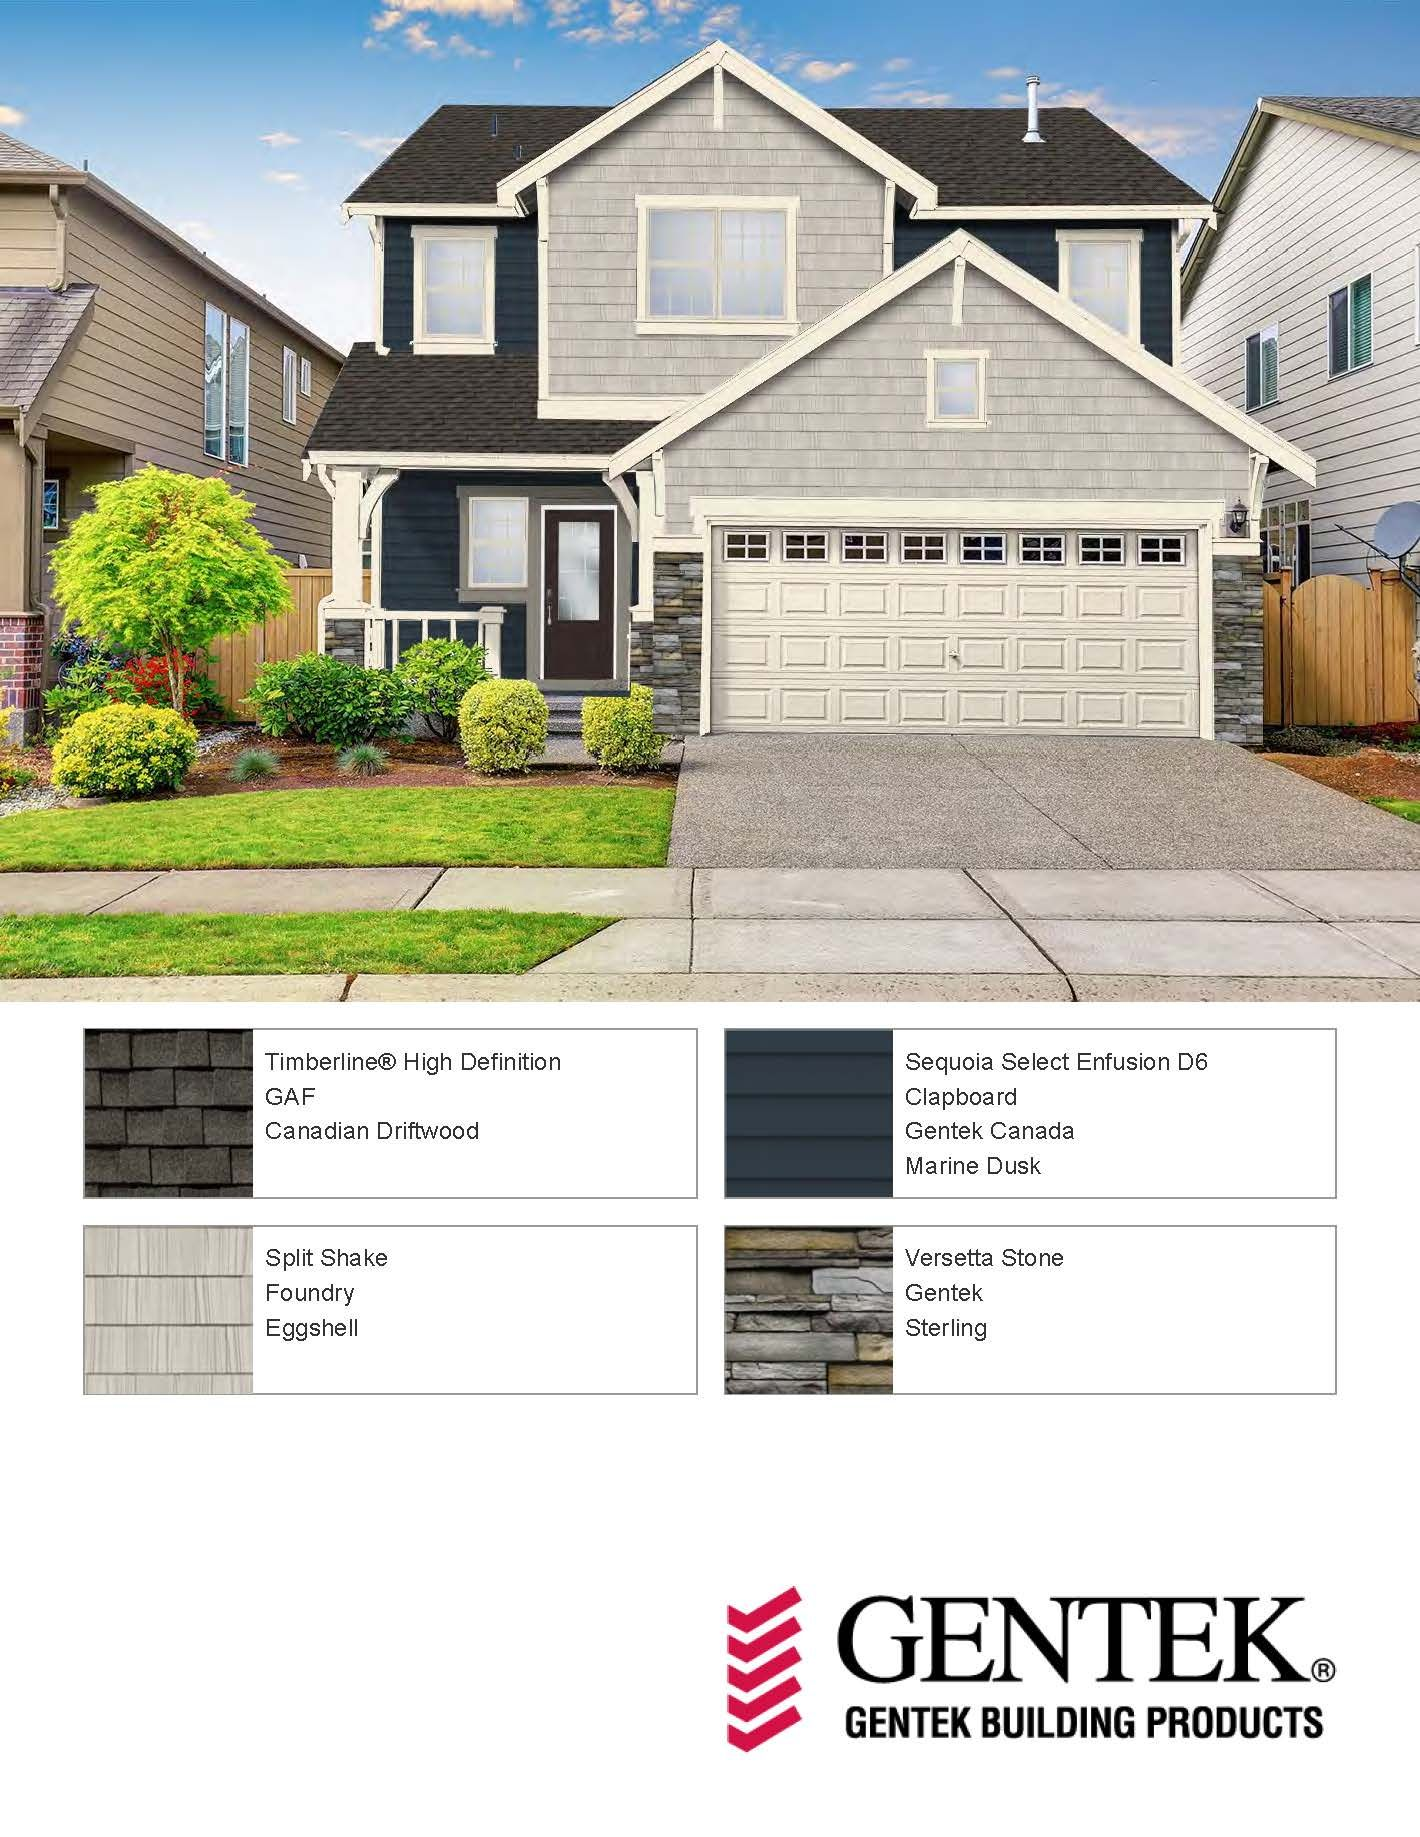 Gentek S Newest Colour Marine Dusk Along With Our Stone And Stone A Shake Products House Exterior Clapboard Exterior Siding